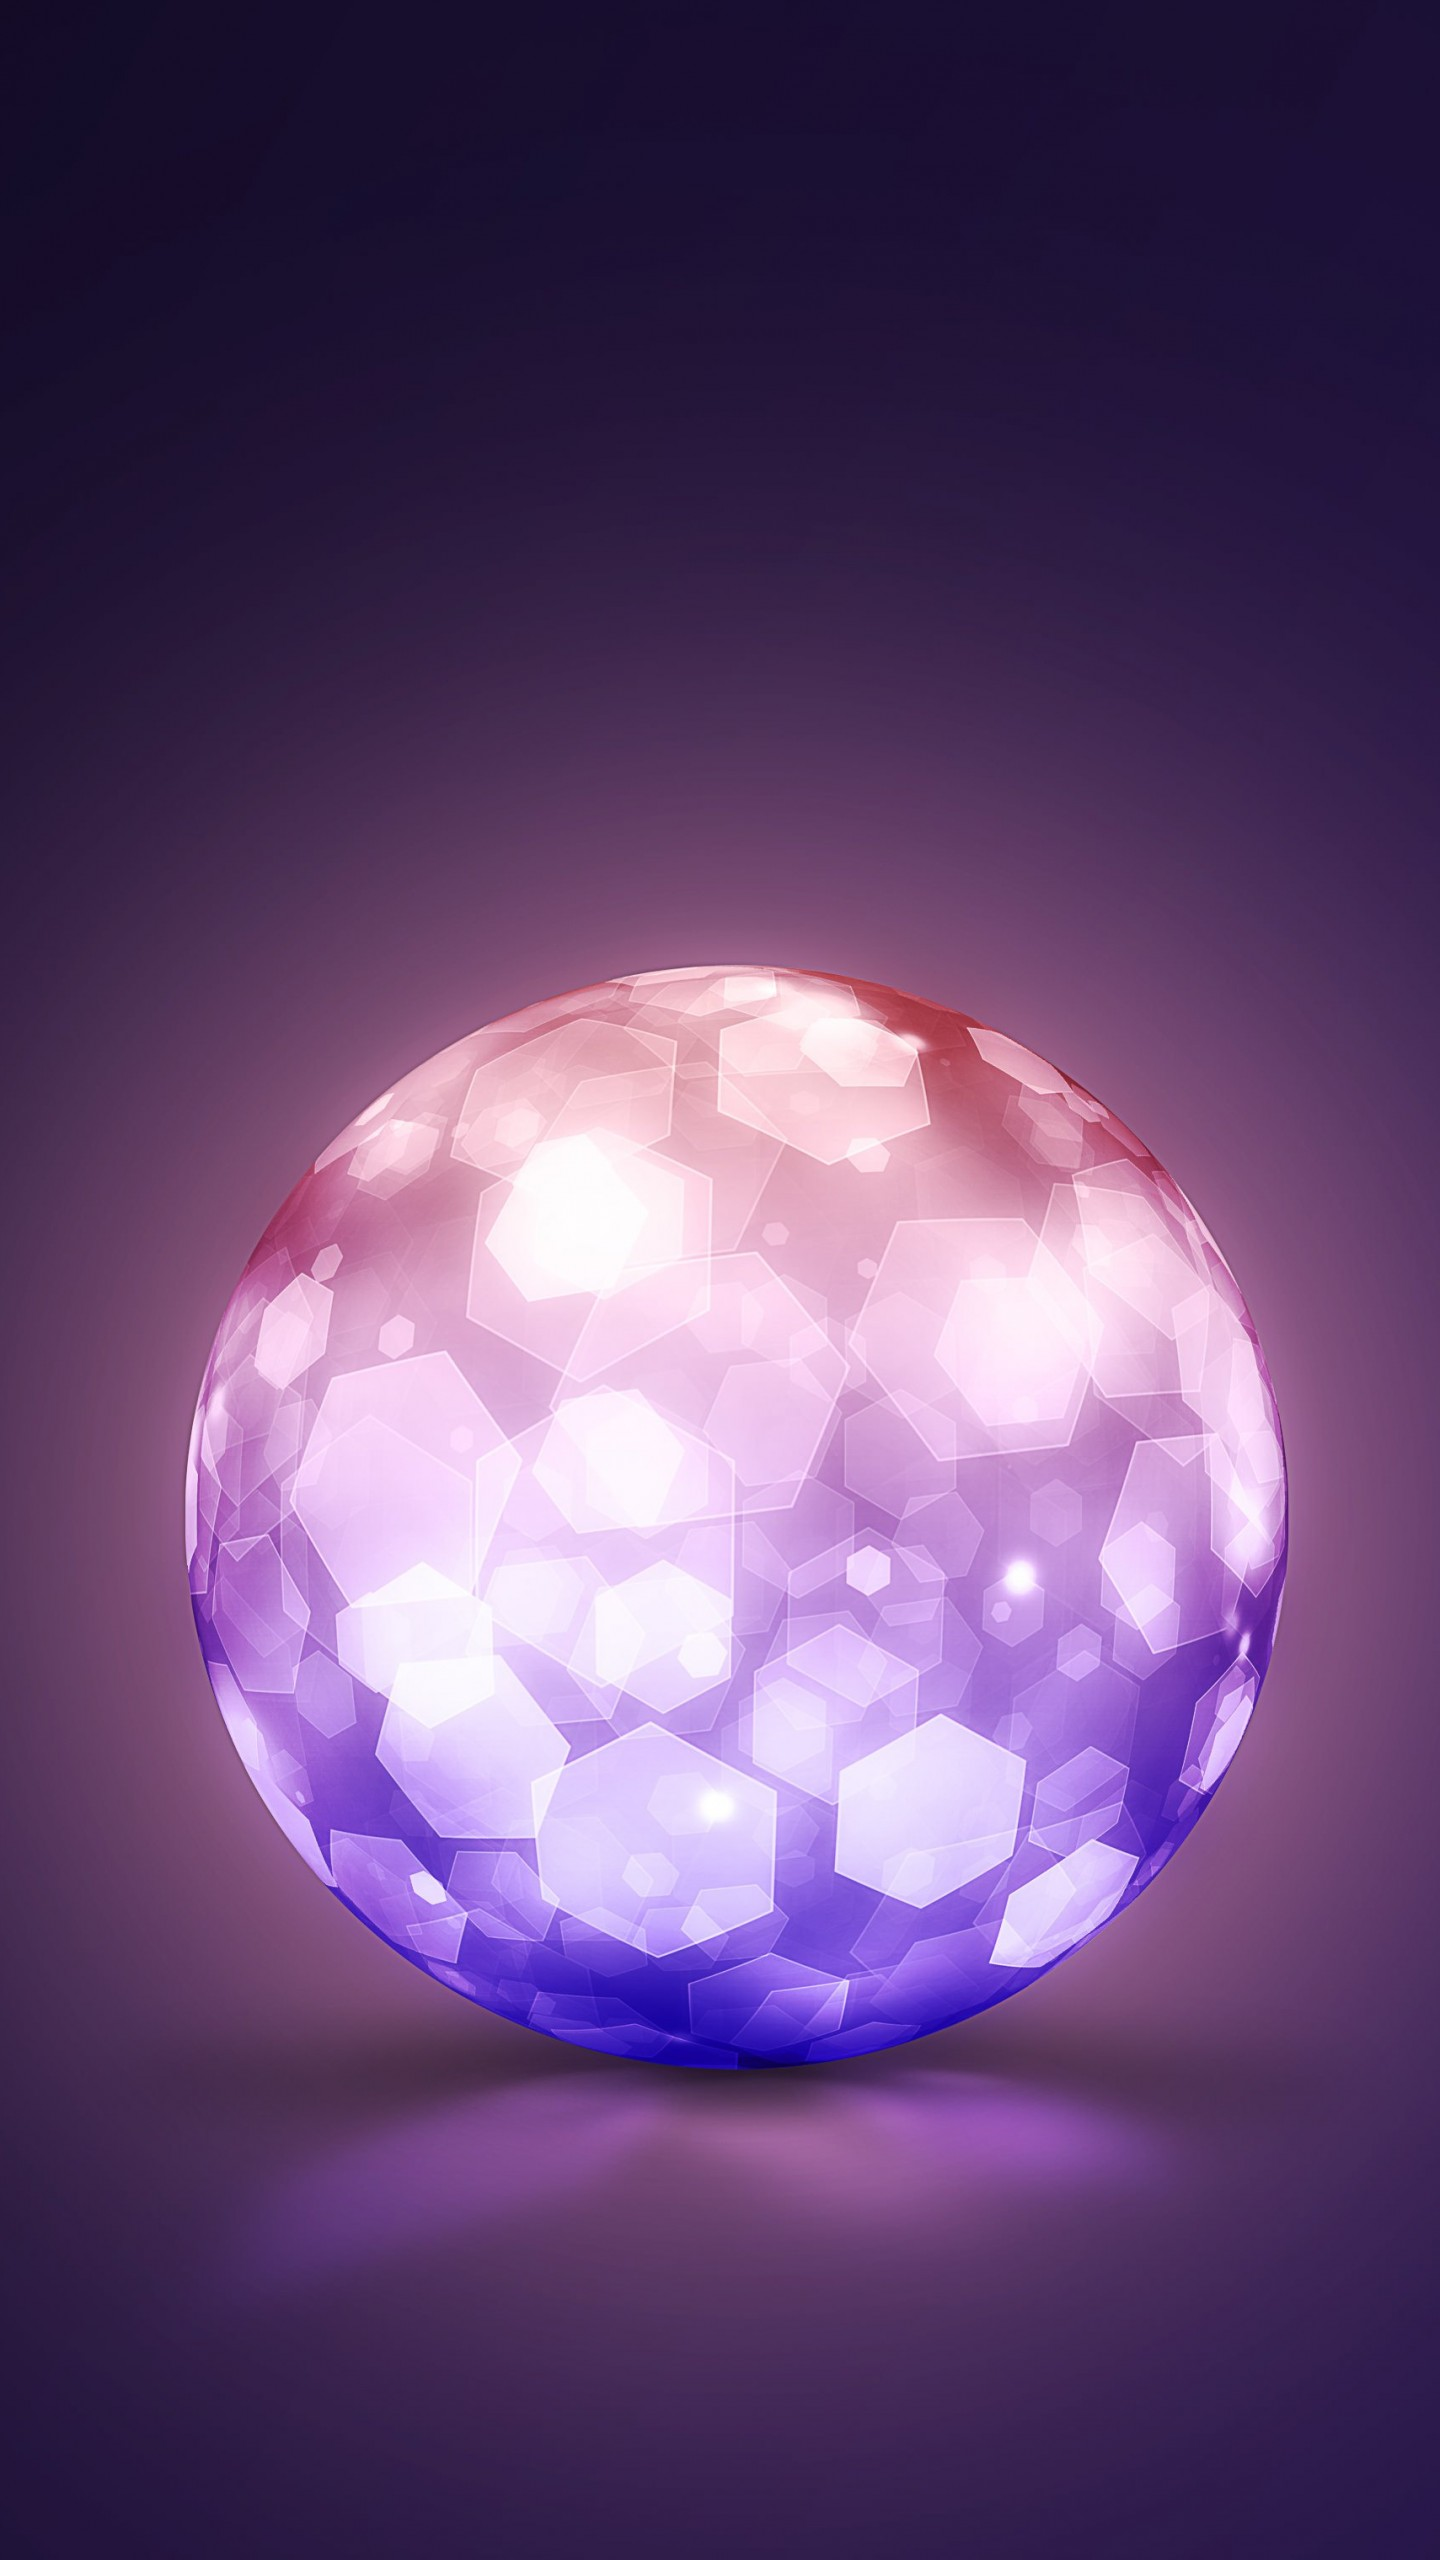 Lightning Ball Wallpaper for LG G3